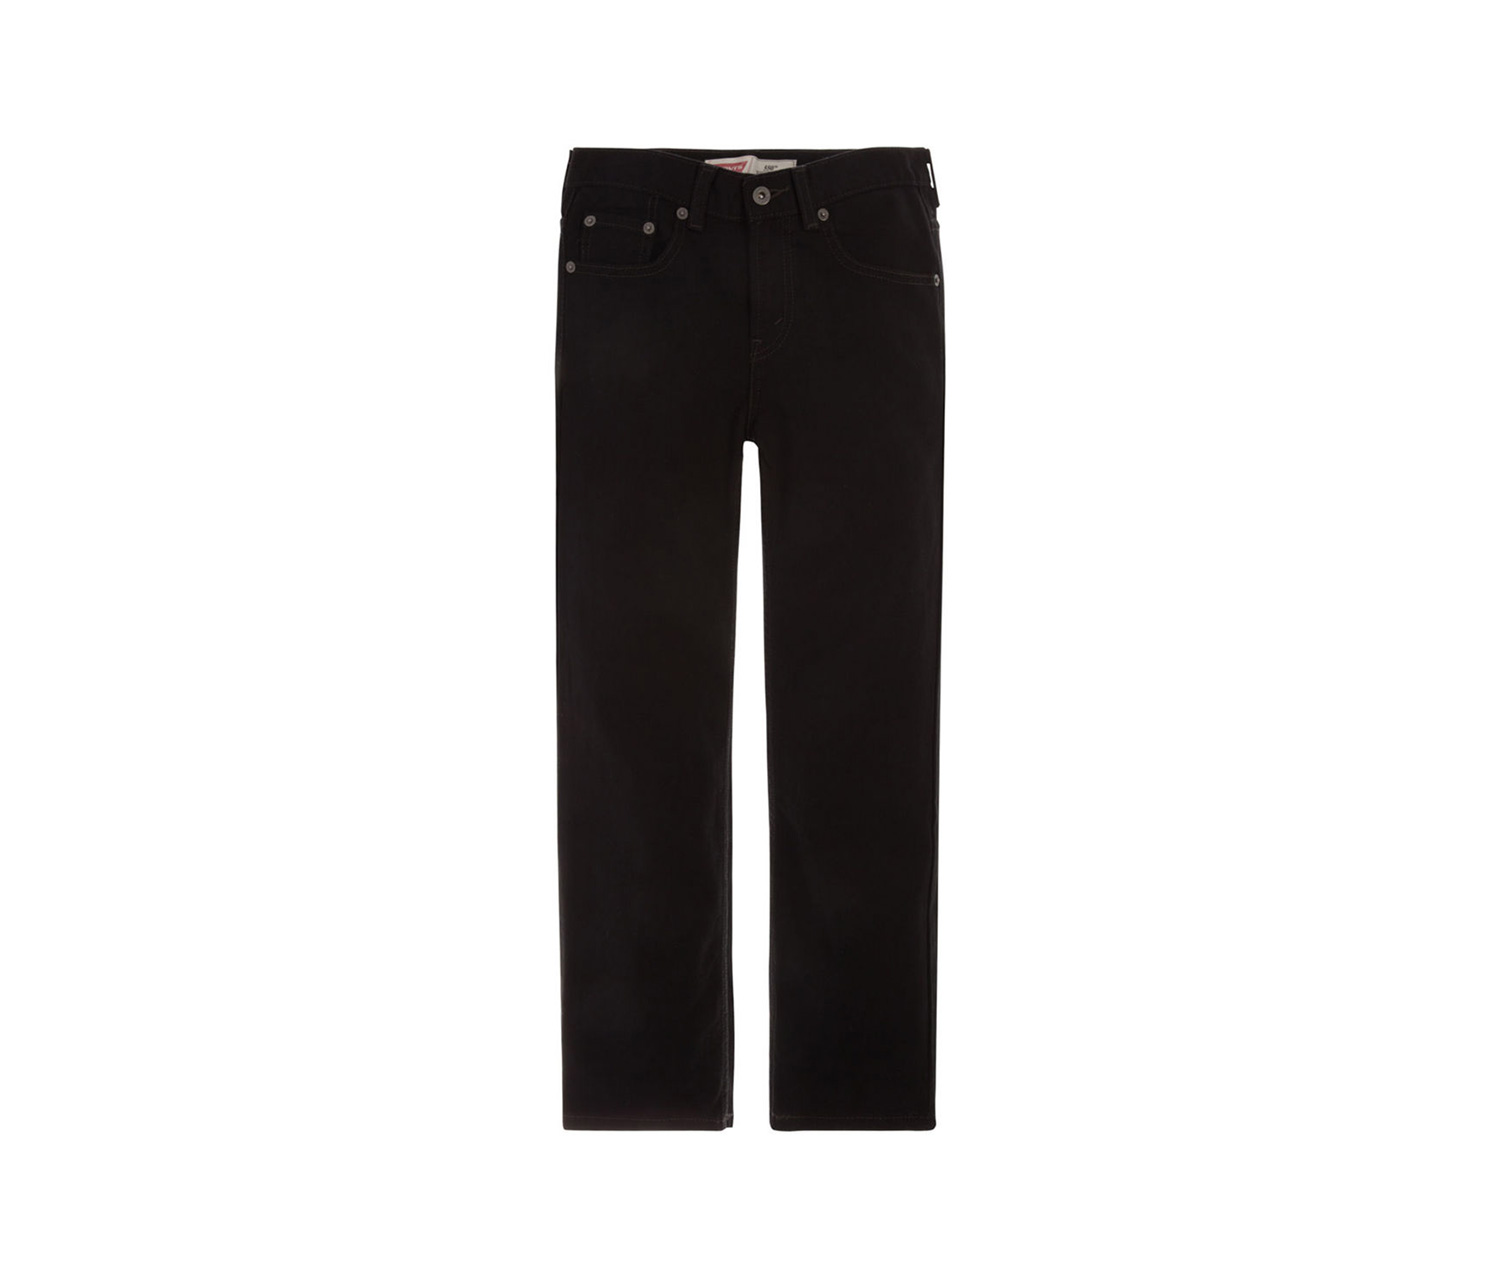 Boys' 550 Regular Relaxed Fit Jeans, Black